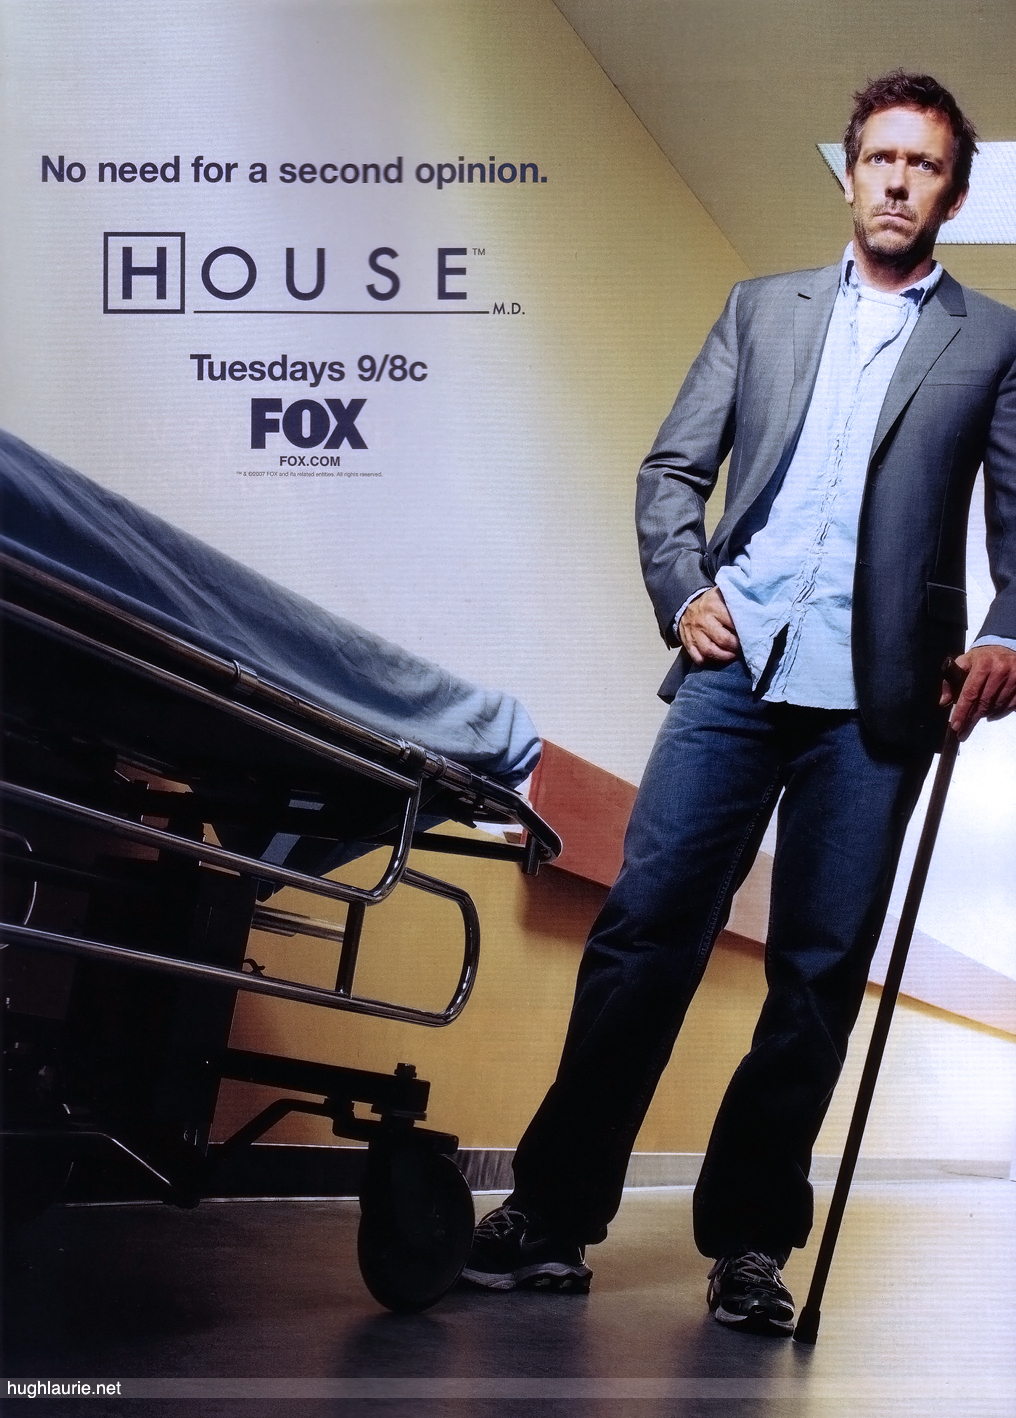 List of episodes | House Wiki | FANDOM powered by Wikia